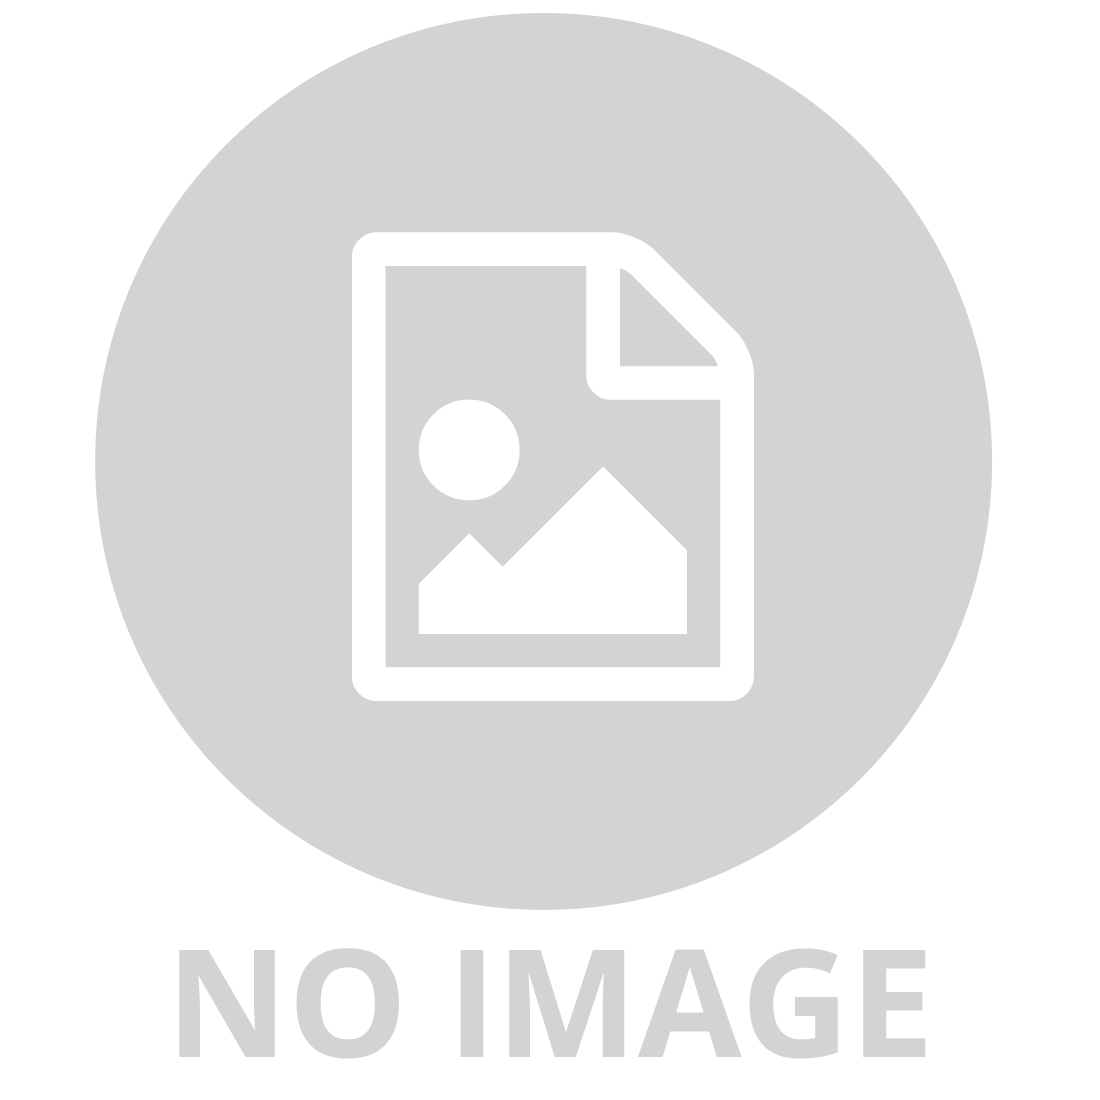 COUNTRY LIFE FARM SET WITH BUILDINGS